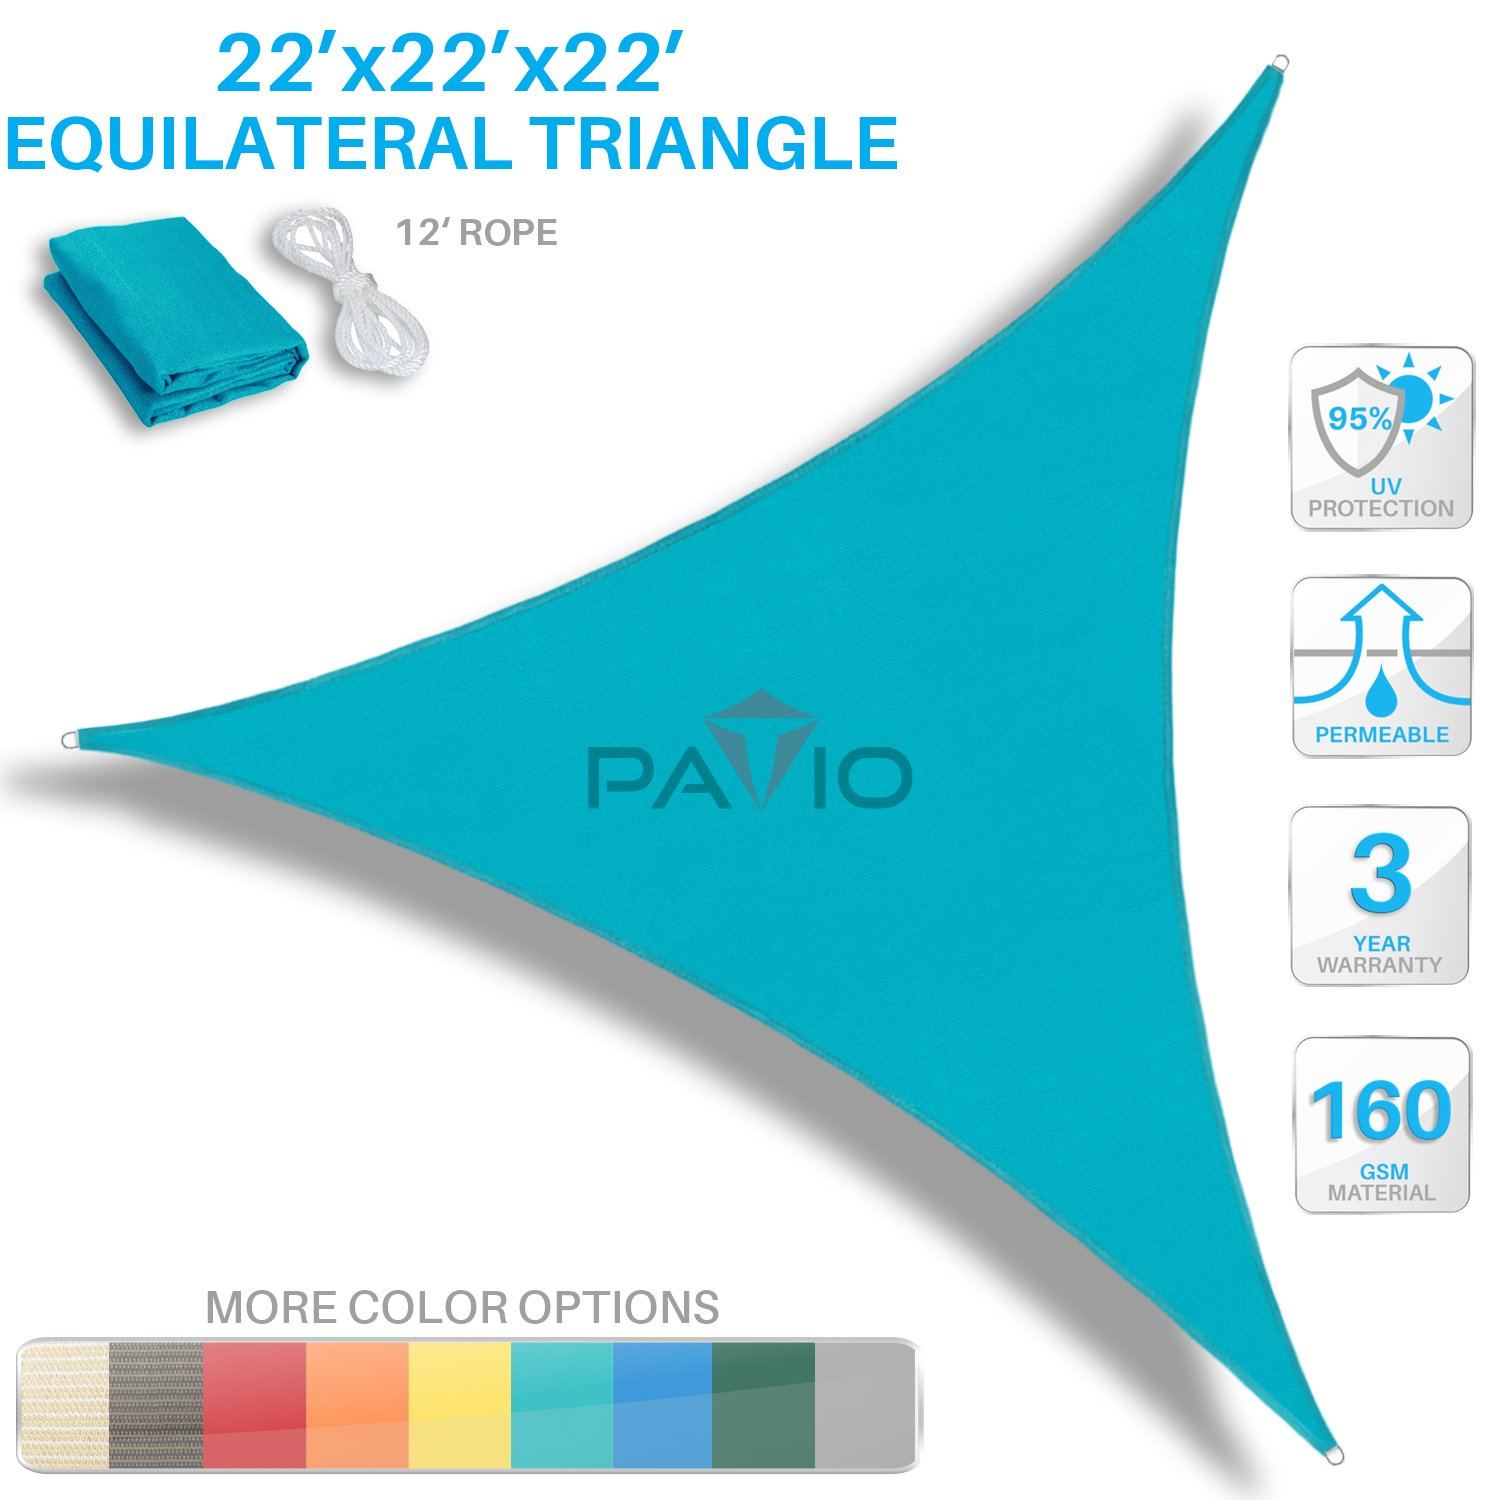 Patio Paradise 22' x 22' x 22' Turquoise Green Sun Shade Sail Equilateral Triangle Canopy - Permeable UV Block Fabric Durable Outdoor - Customized Available